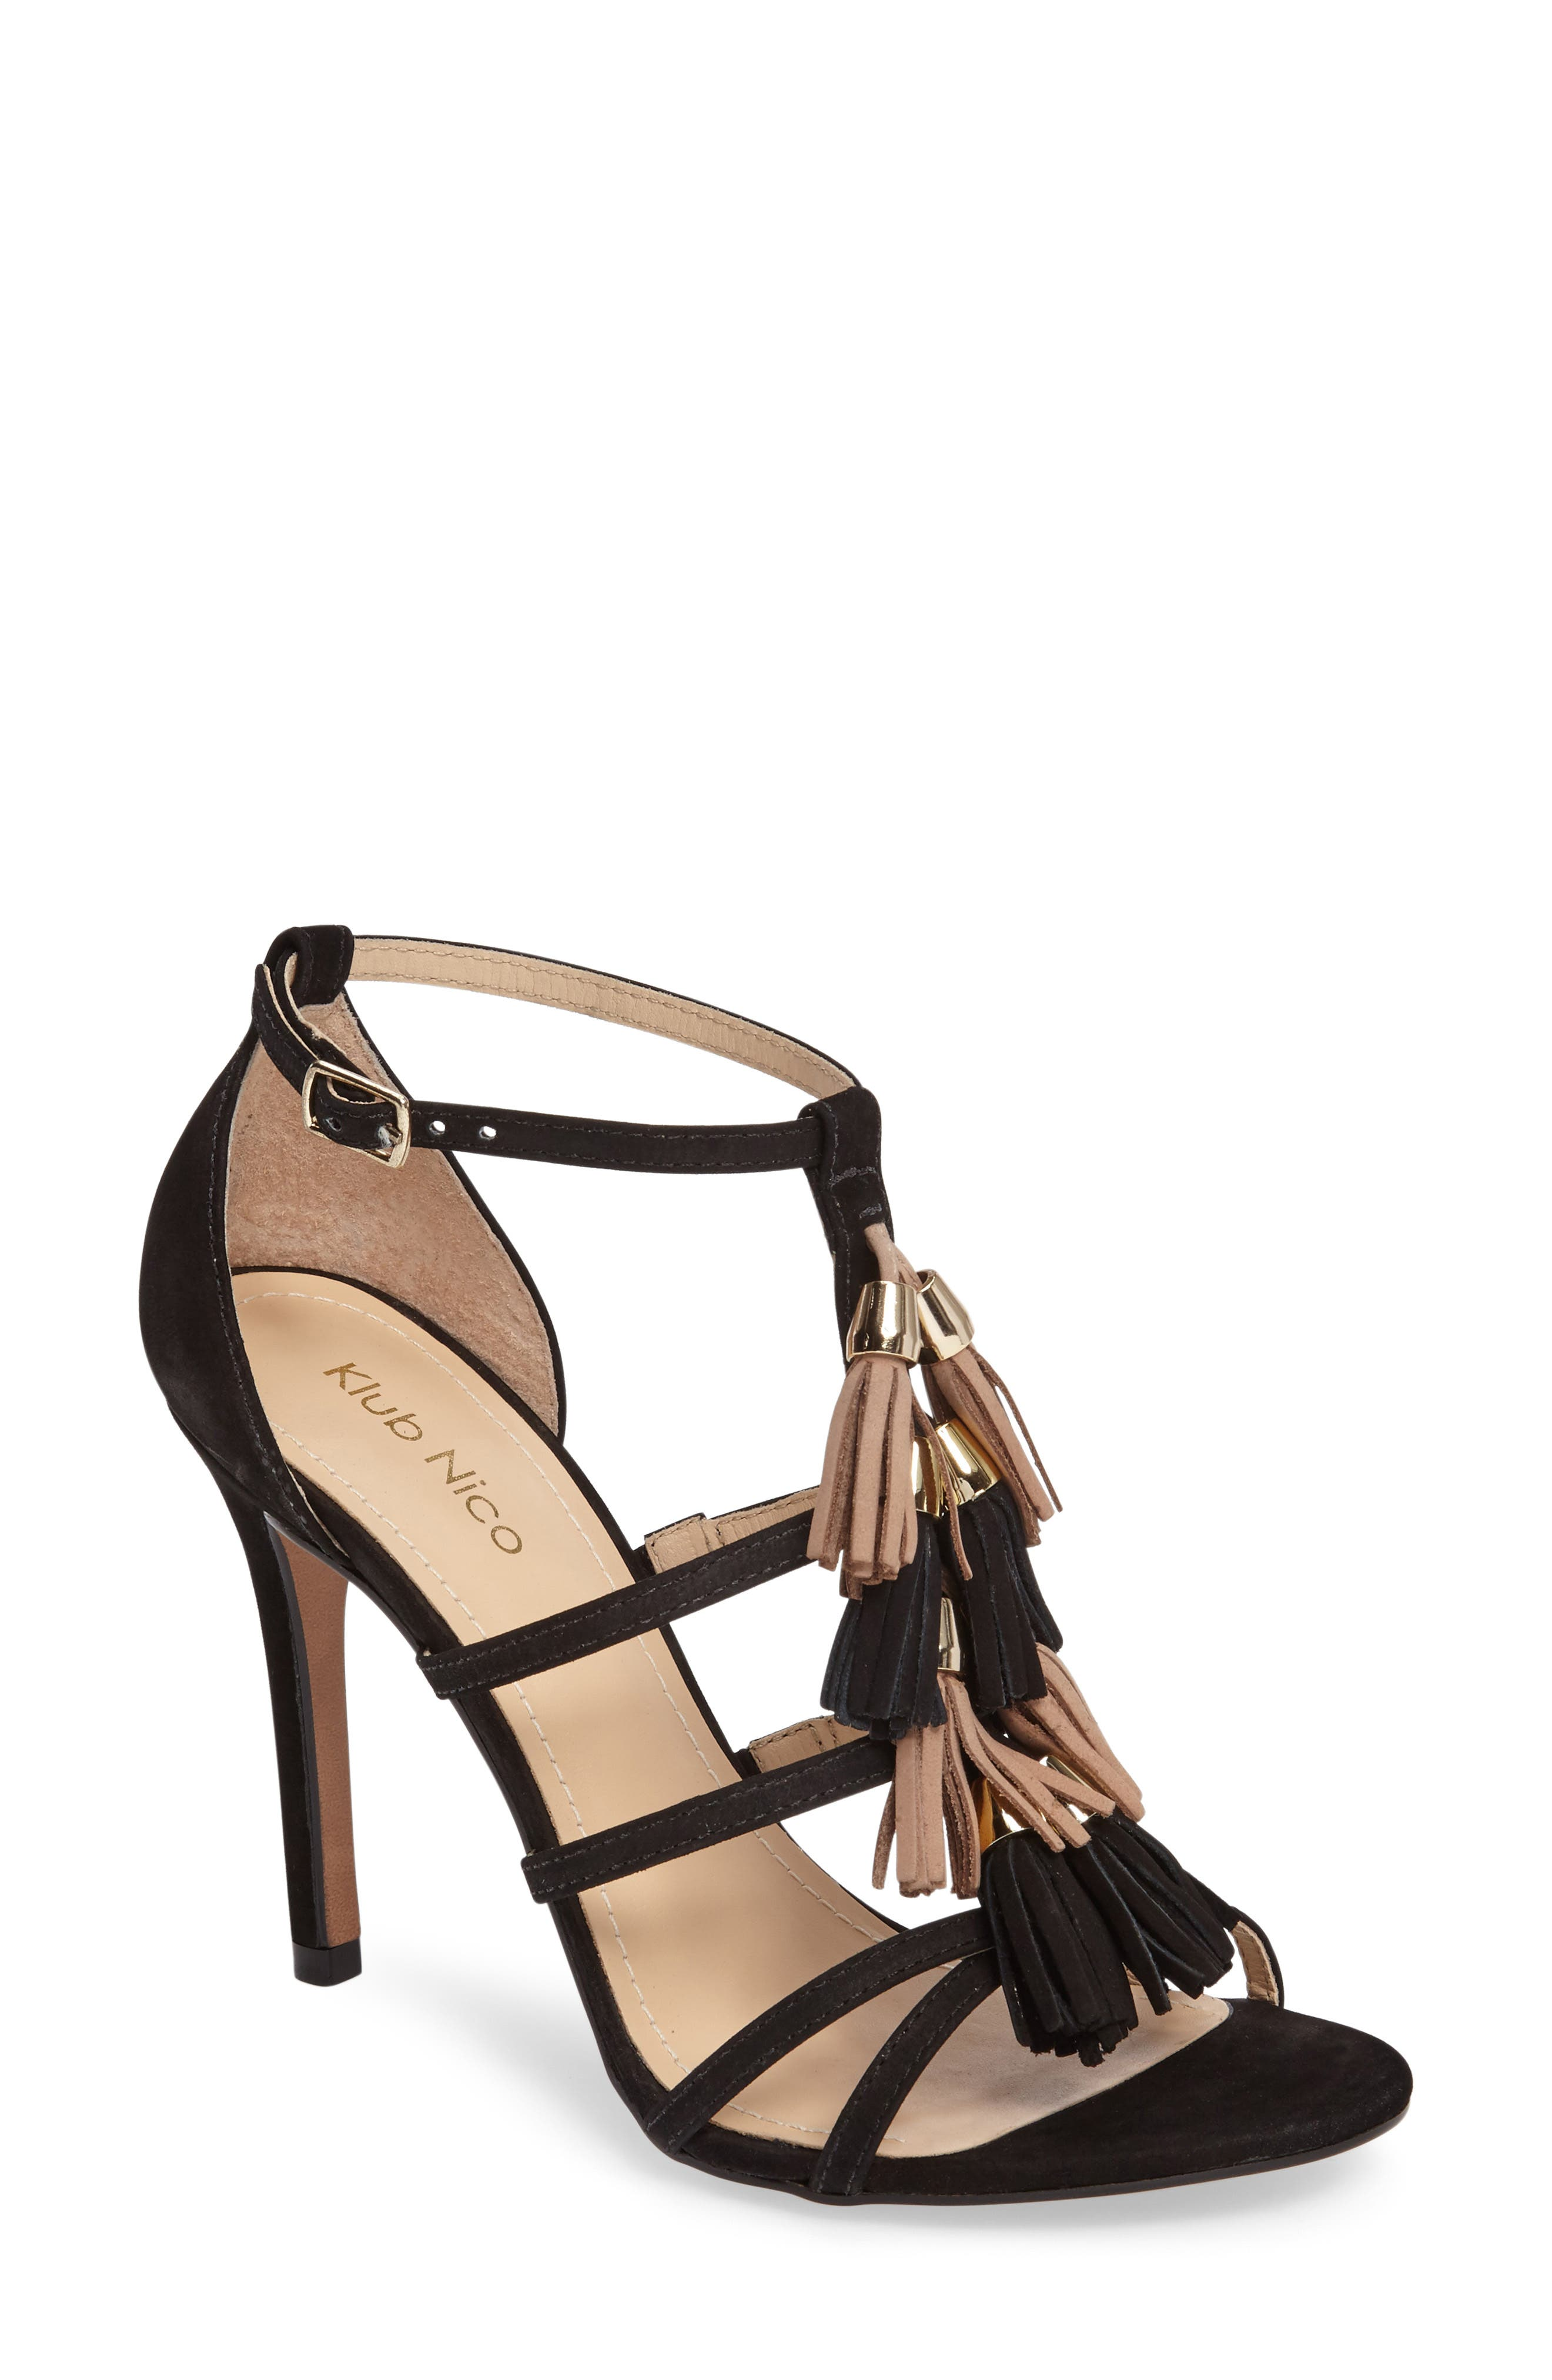 Myra Tassel Sandal,                         Main,                         color, 001